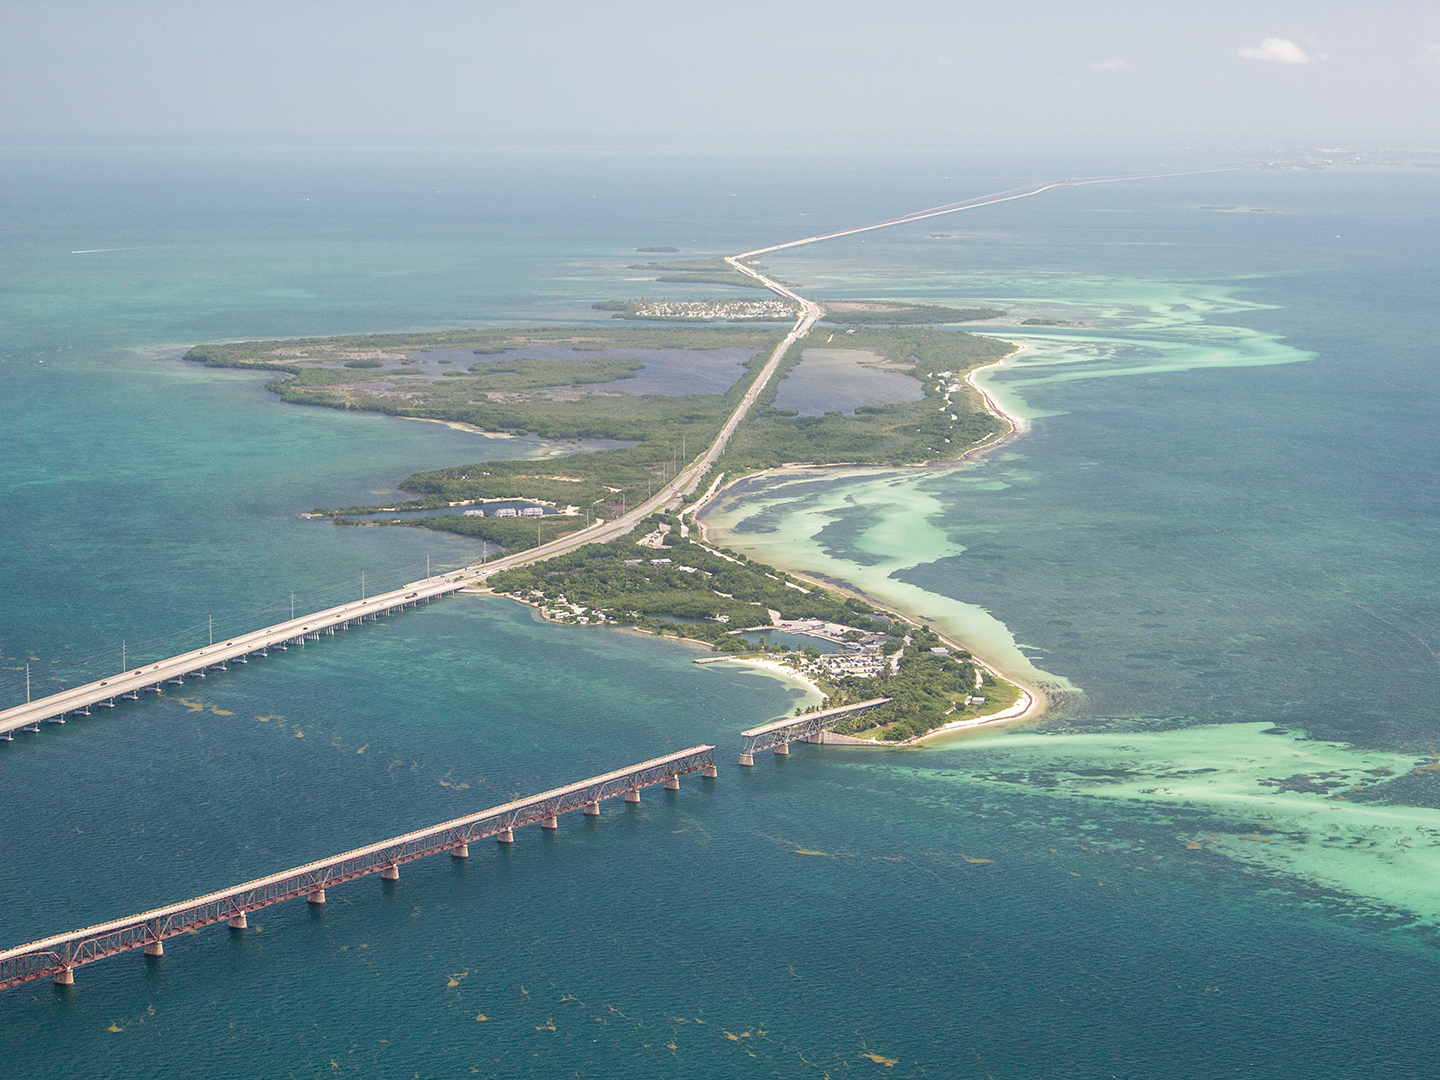 An aerial image of the middle Florida Keys